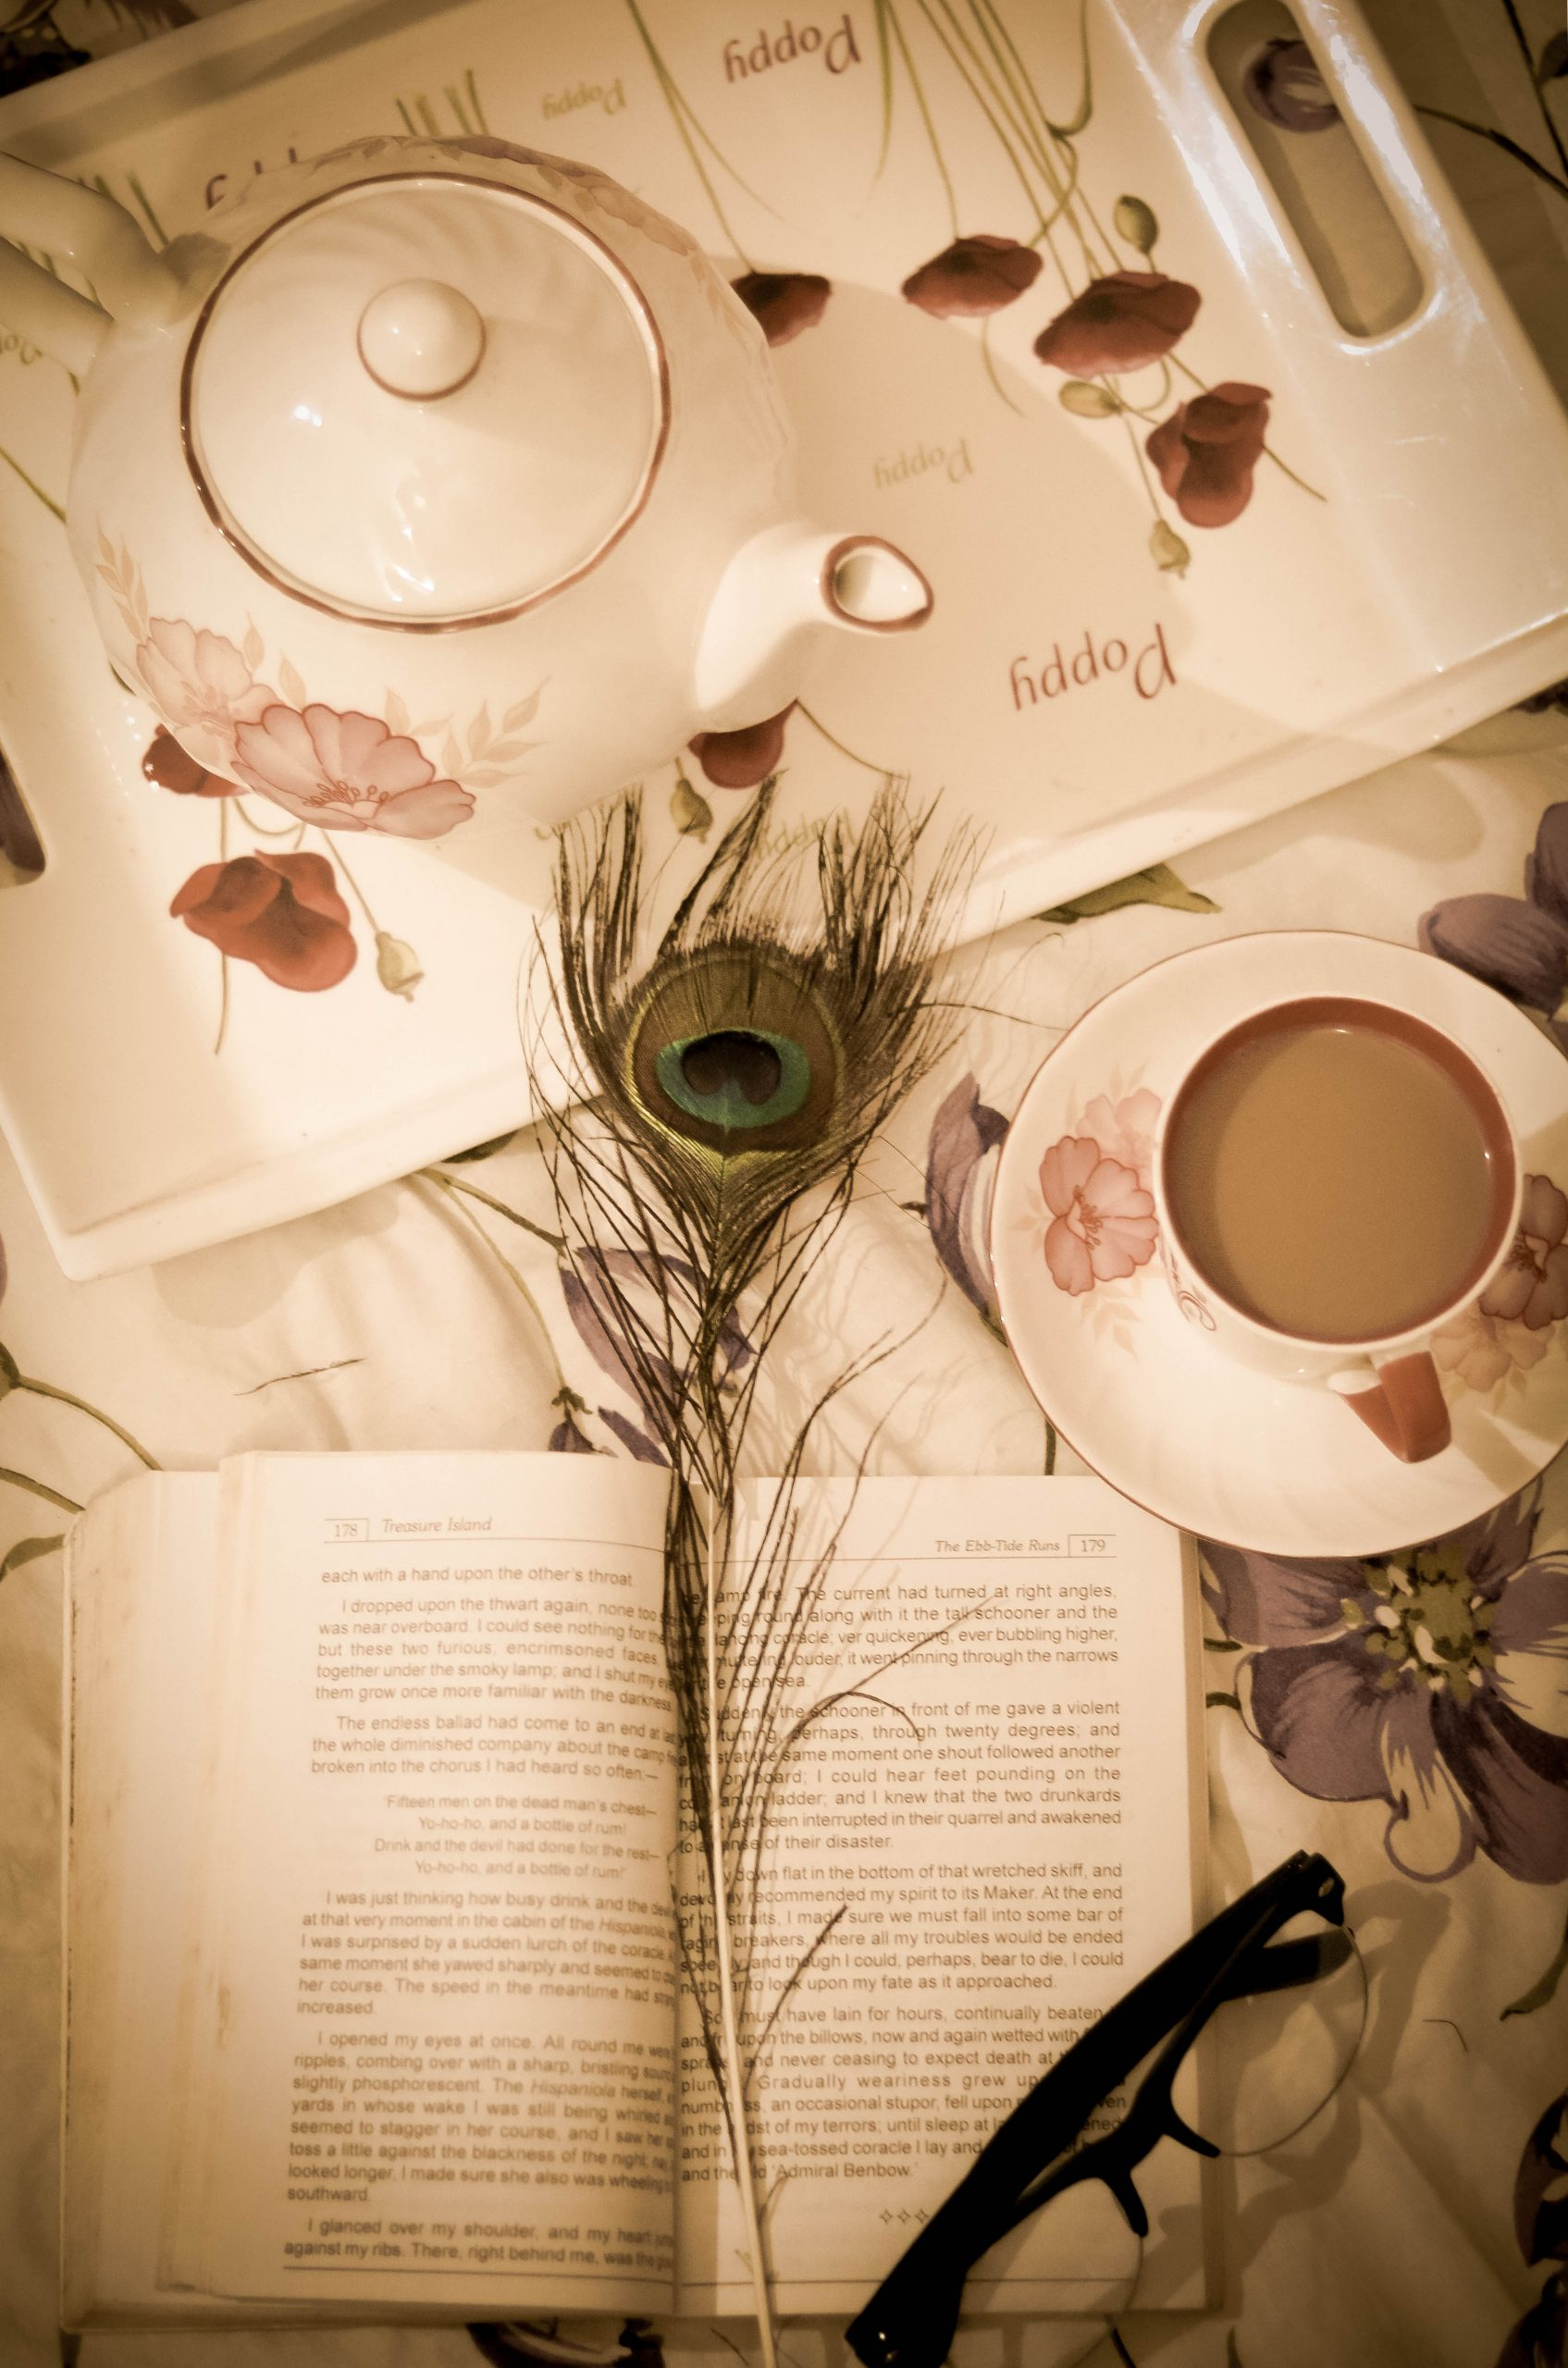 book, tea and spects